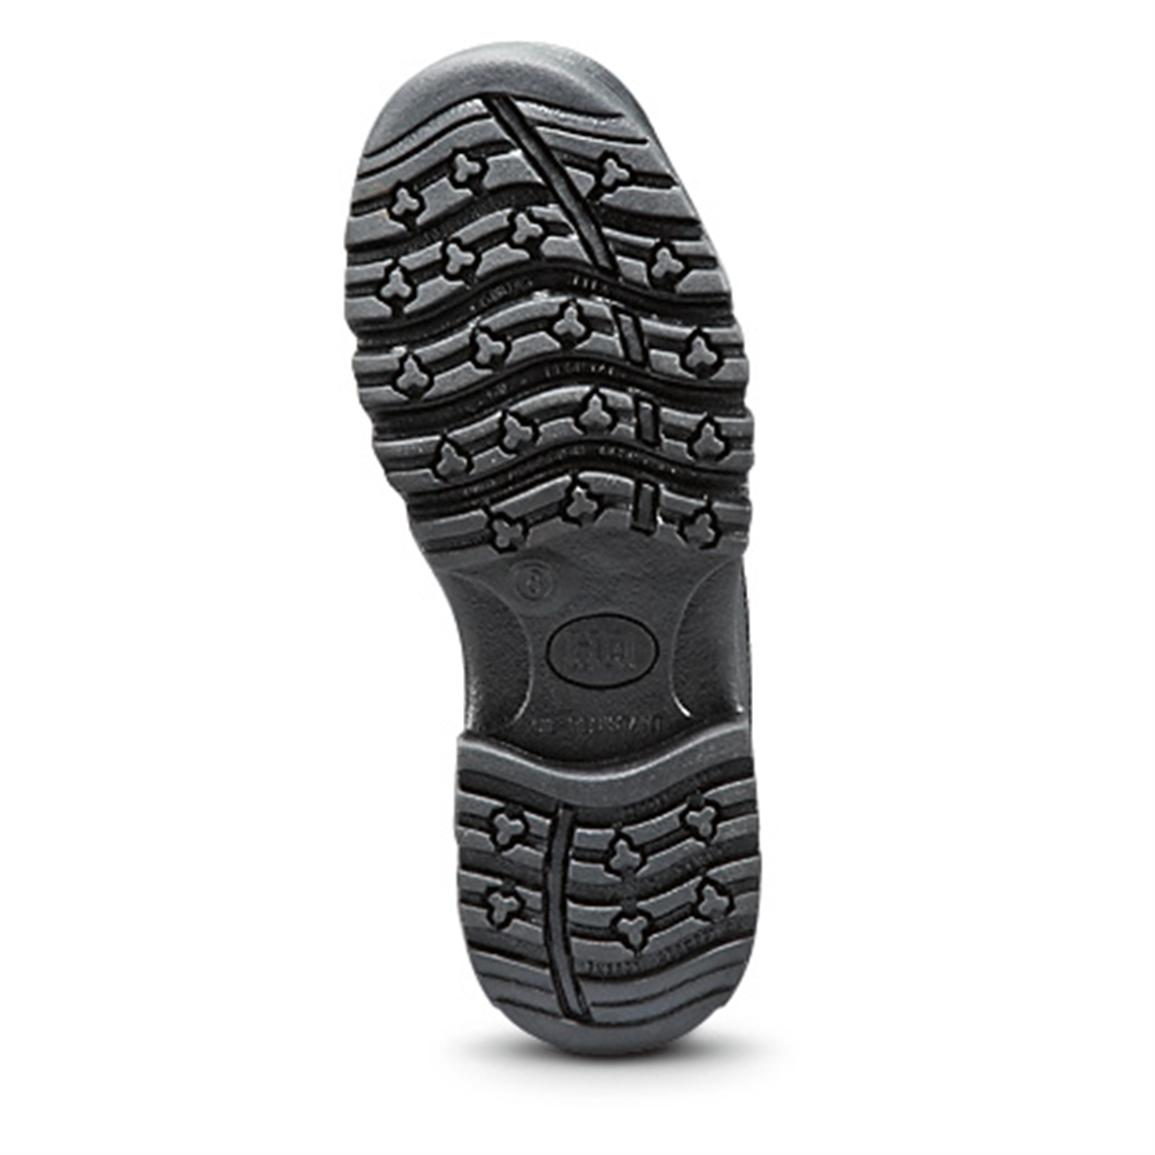 Aggressive slip and oil-resistant rubber outsole